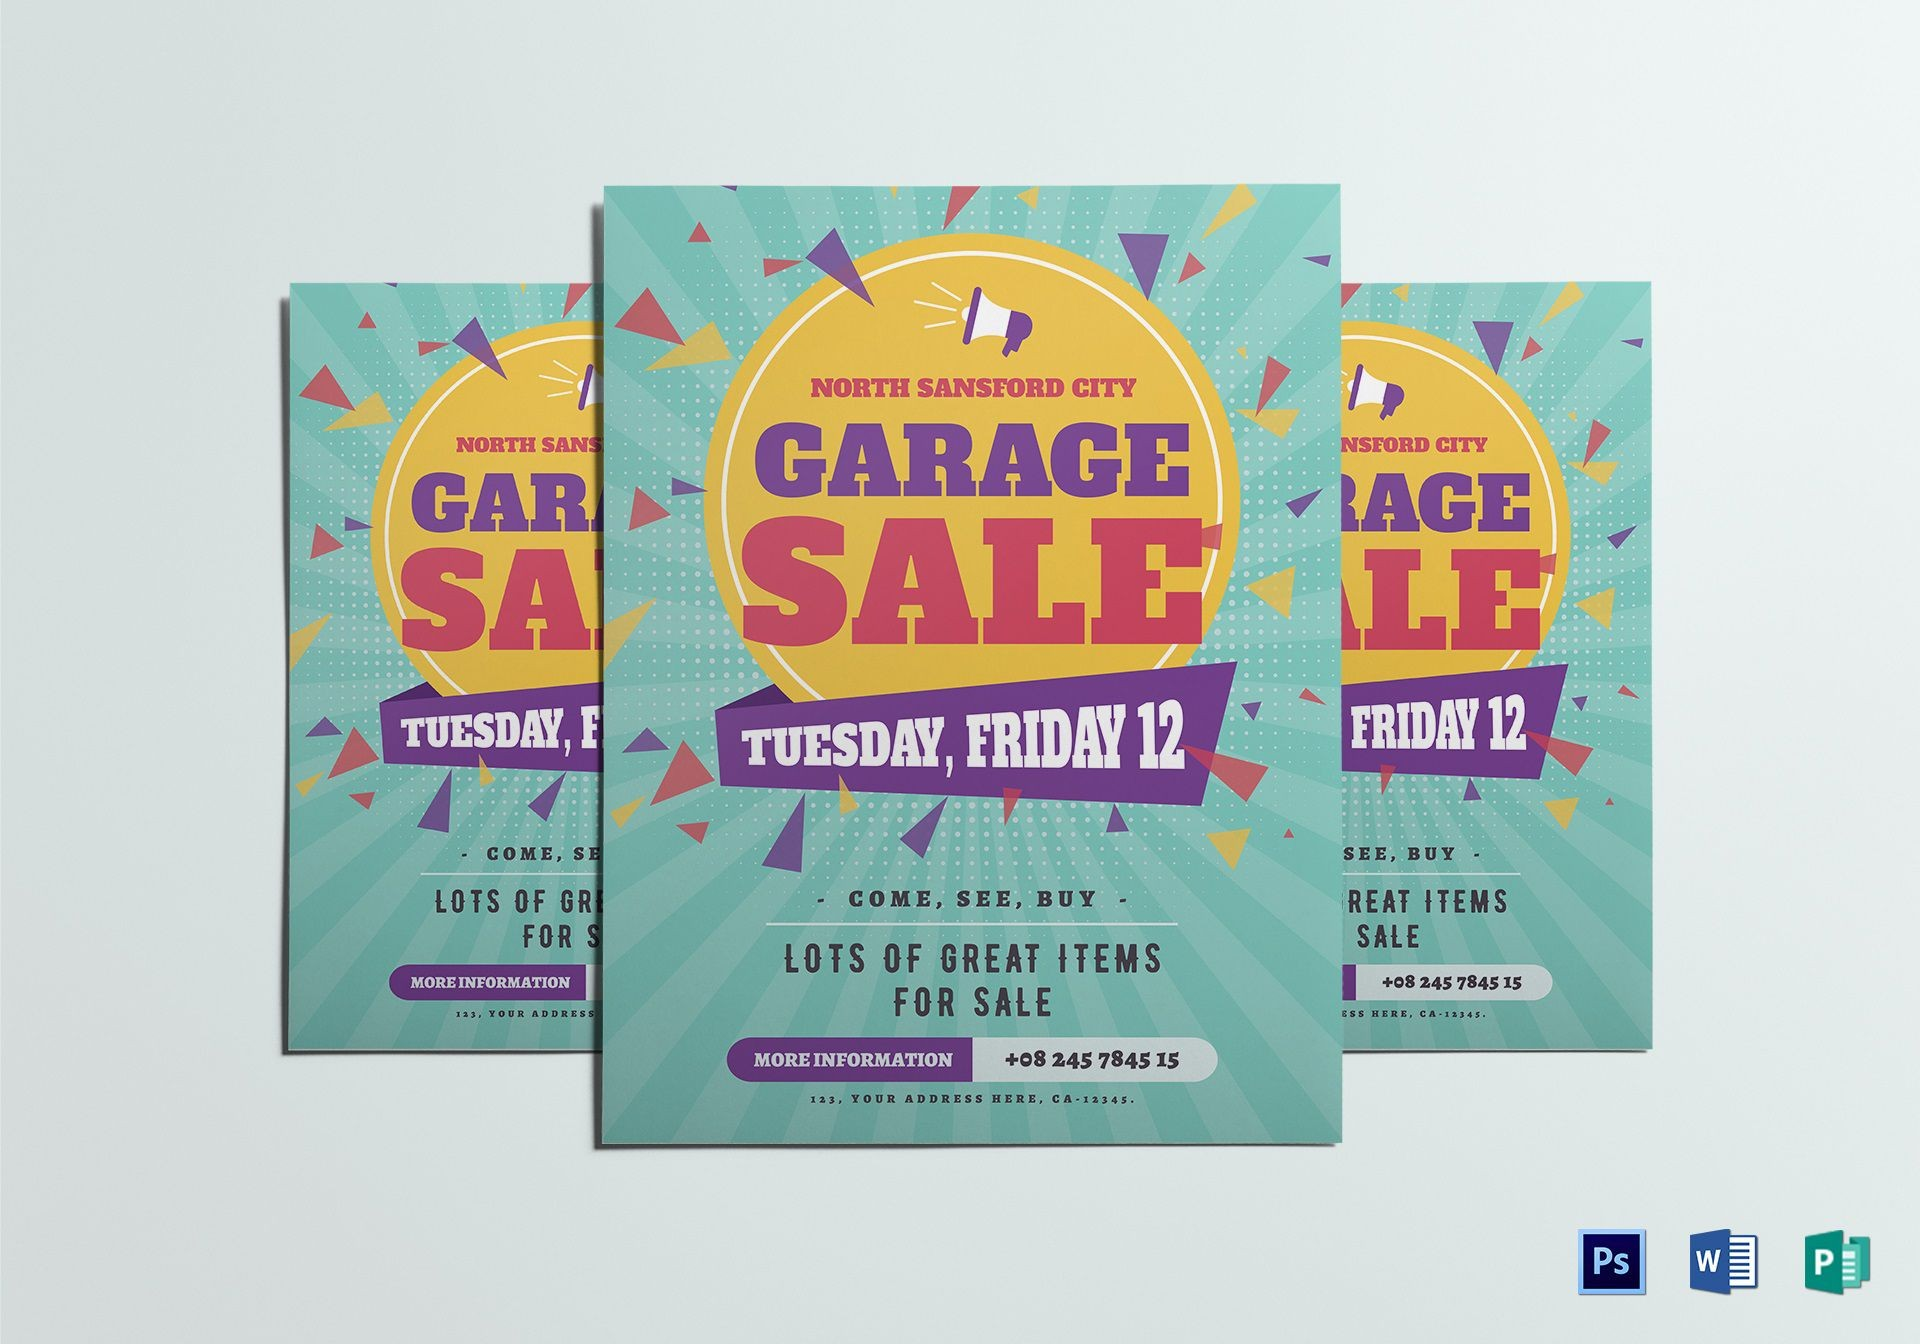 007 Wondrou Yard Sale Flyer Template Idea  Ad Sample Microsoft Word Garage Free1920